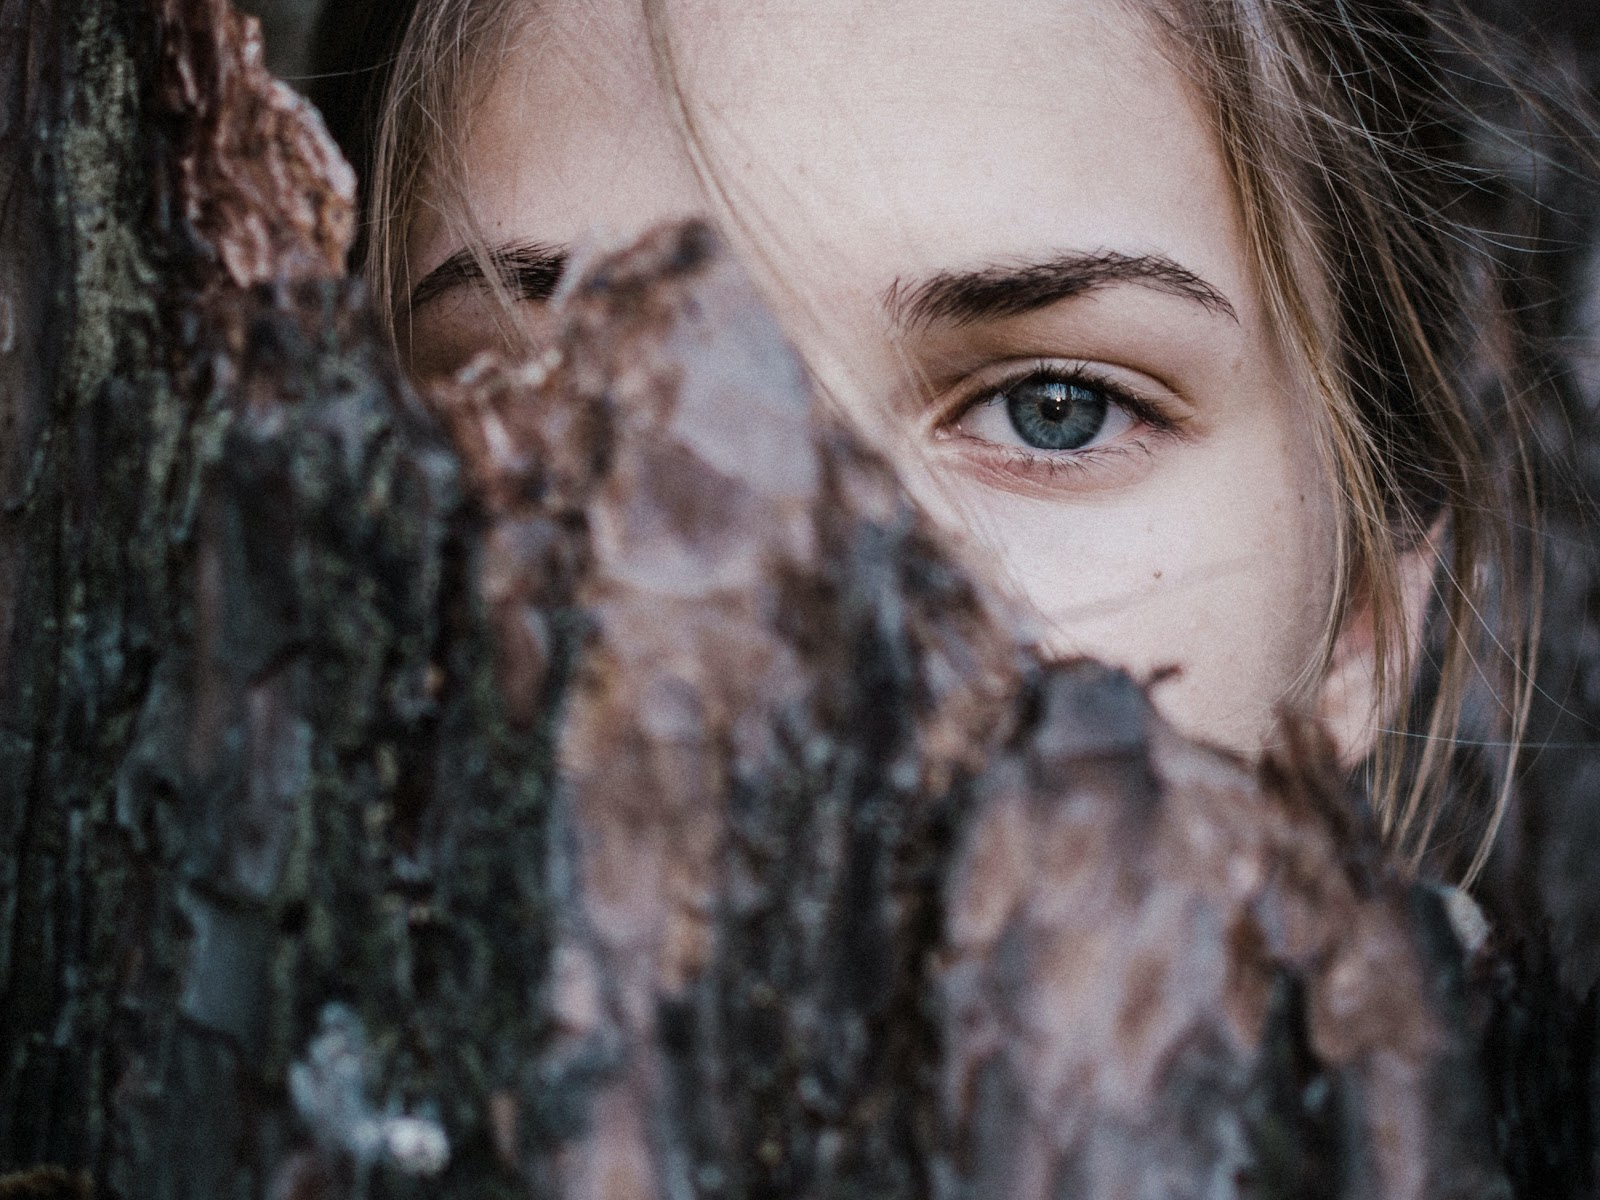 A white woman with her face half obscured by tree bark.